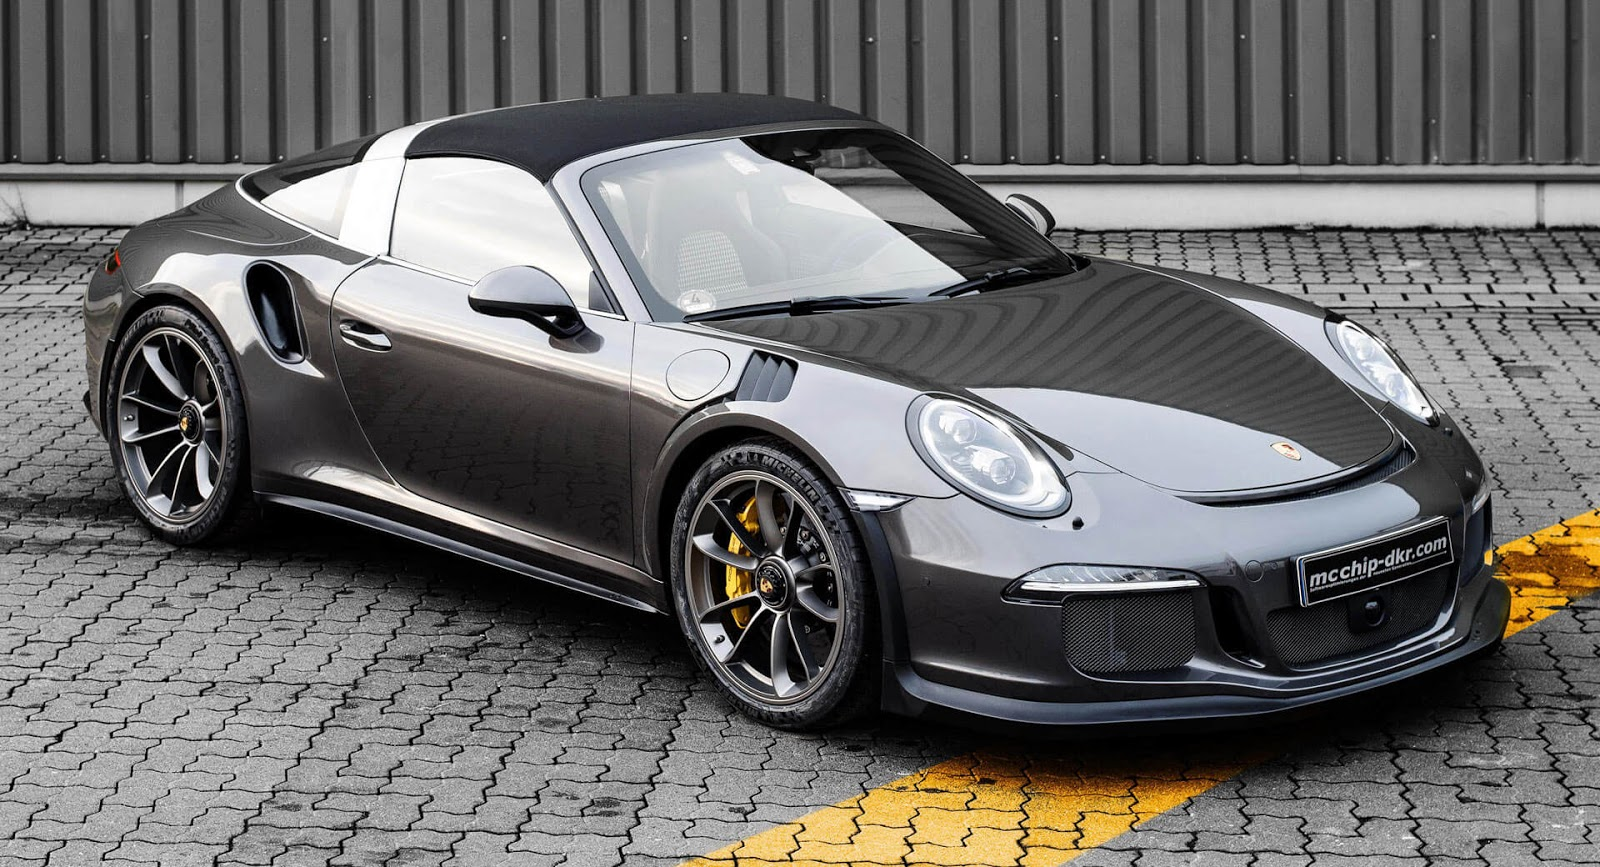 porsche 911 targa 4 gts by mcchip looks like a gt3 rs has it licked on power carscoops. Black Bedroom Furniture Sets. Home Design Ideas